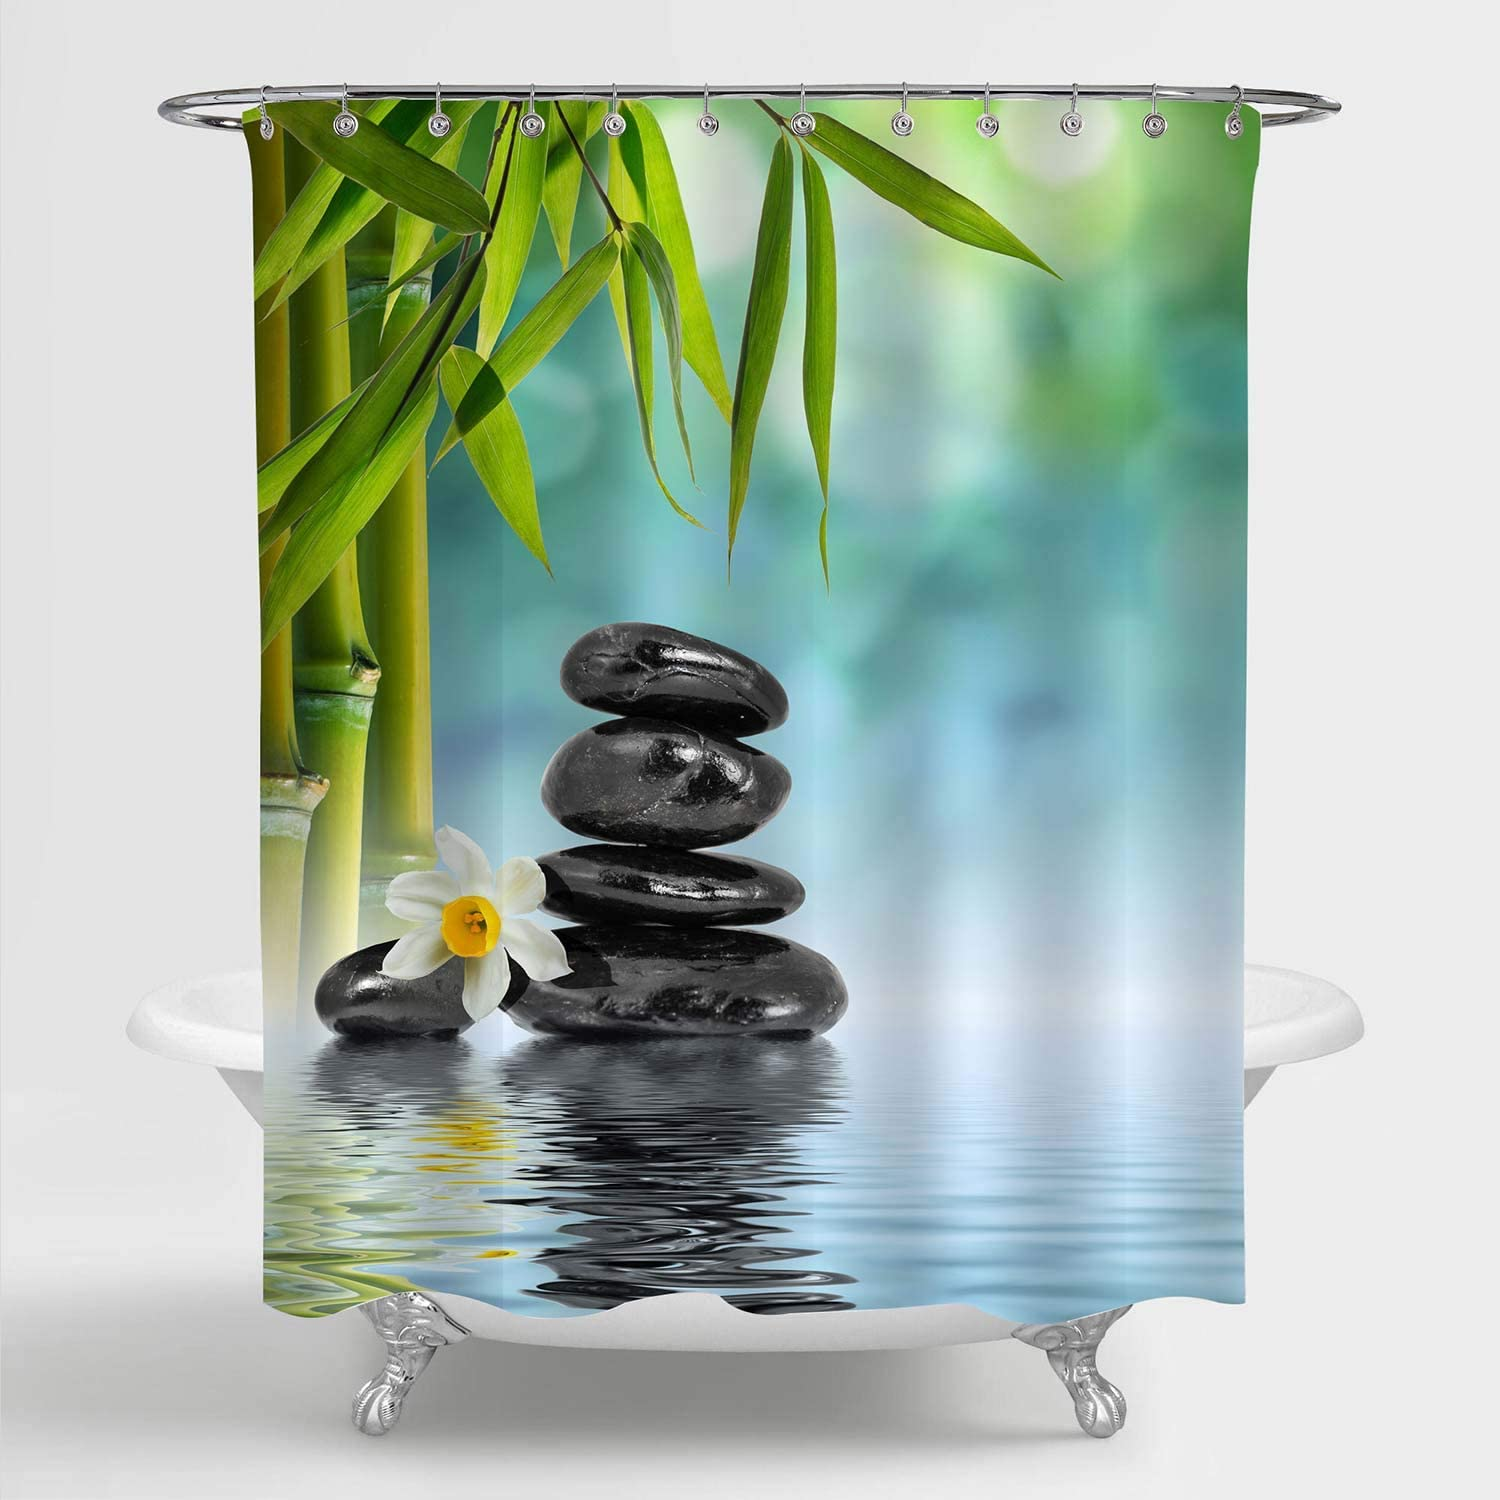 MitoVilla Zen Spa Shower Curtain for Asian Bathroom Decor, Japanese Garden with Frangipani Flower, Balance Basalt Stones and Bamboo on the Water Bathroom Accessories, Gifts for Women, Green, 72W x 72L